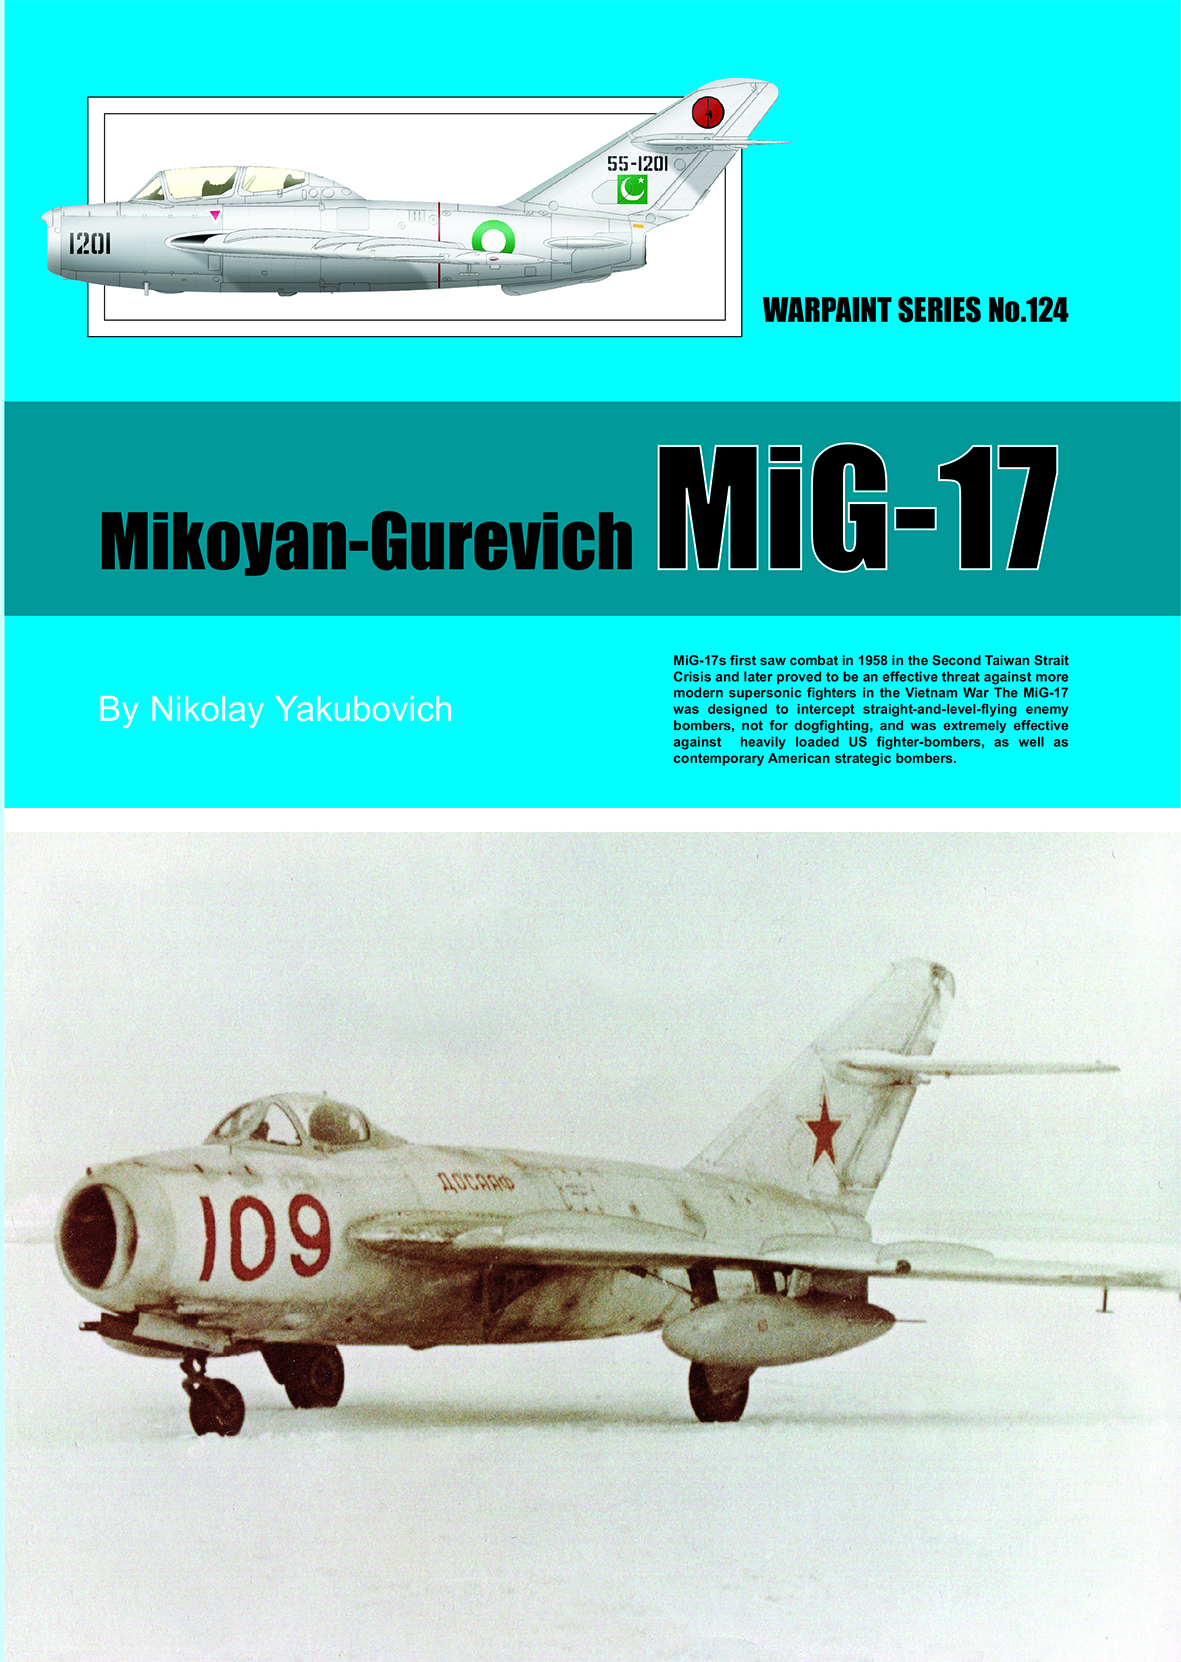 Guideline Publications USA Mikoyan-Gurevich MiG-17 Warpaint 124